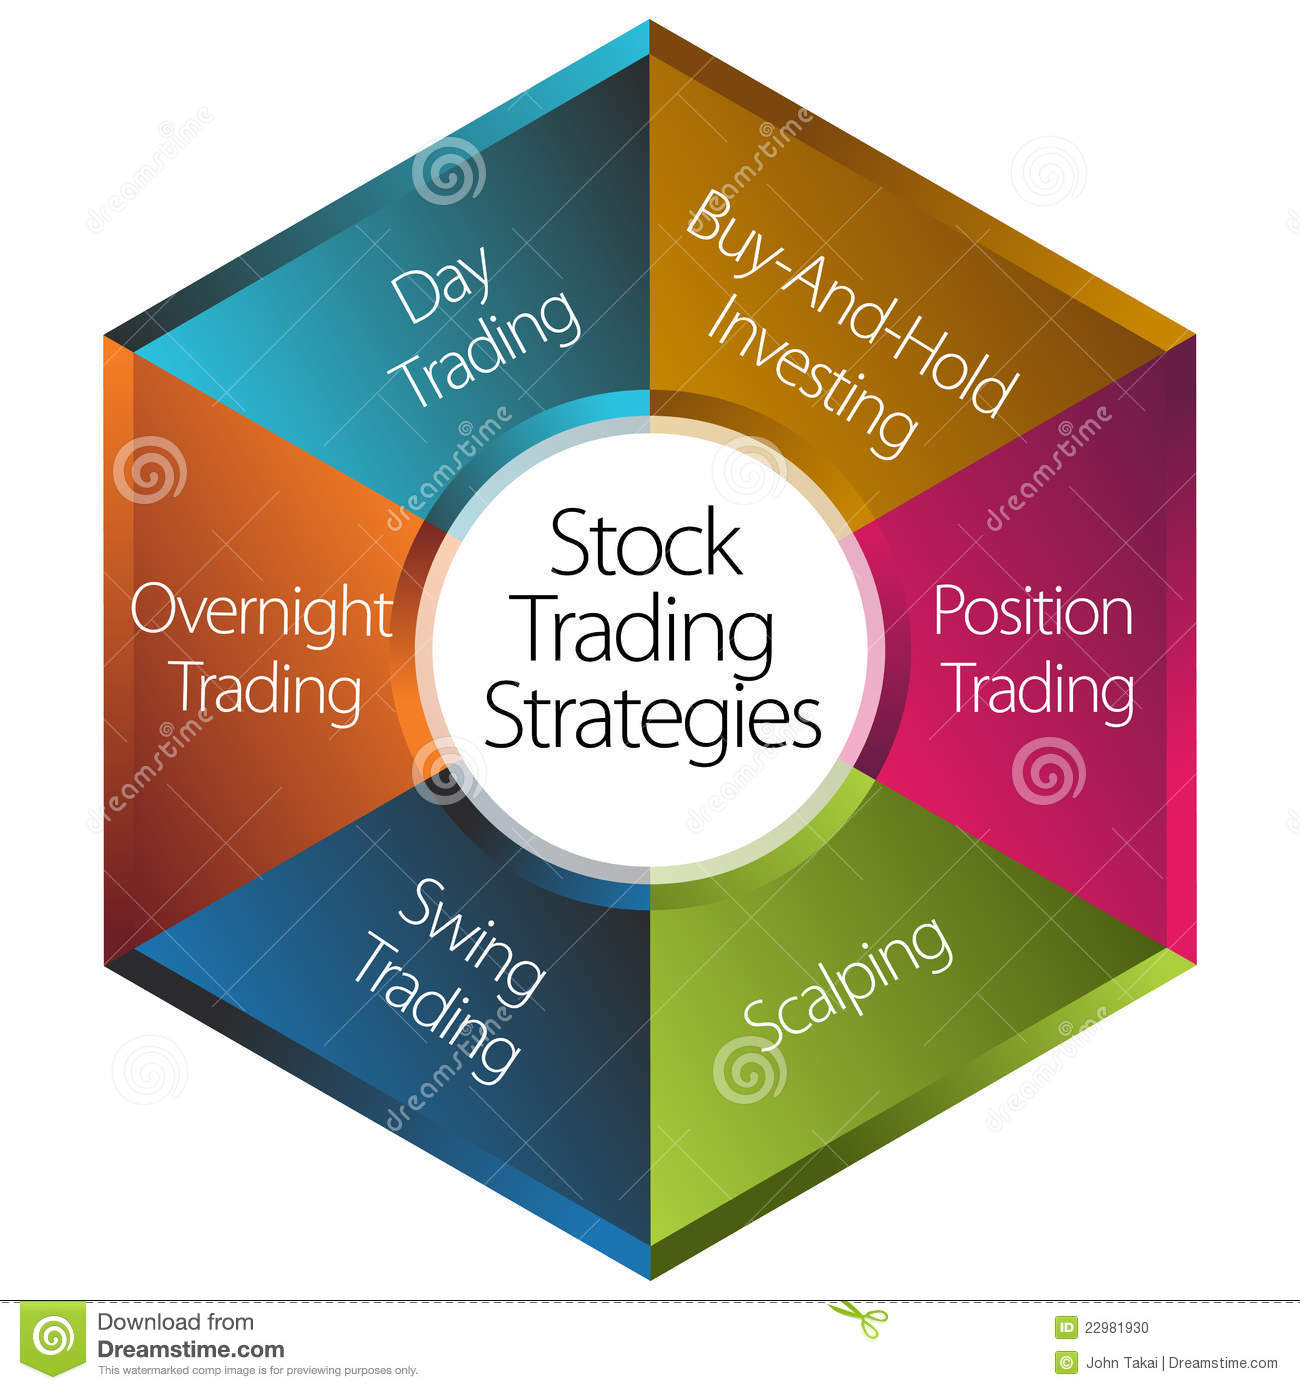 Trading strategies in stock market pdf